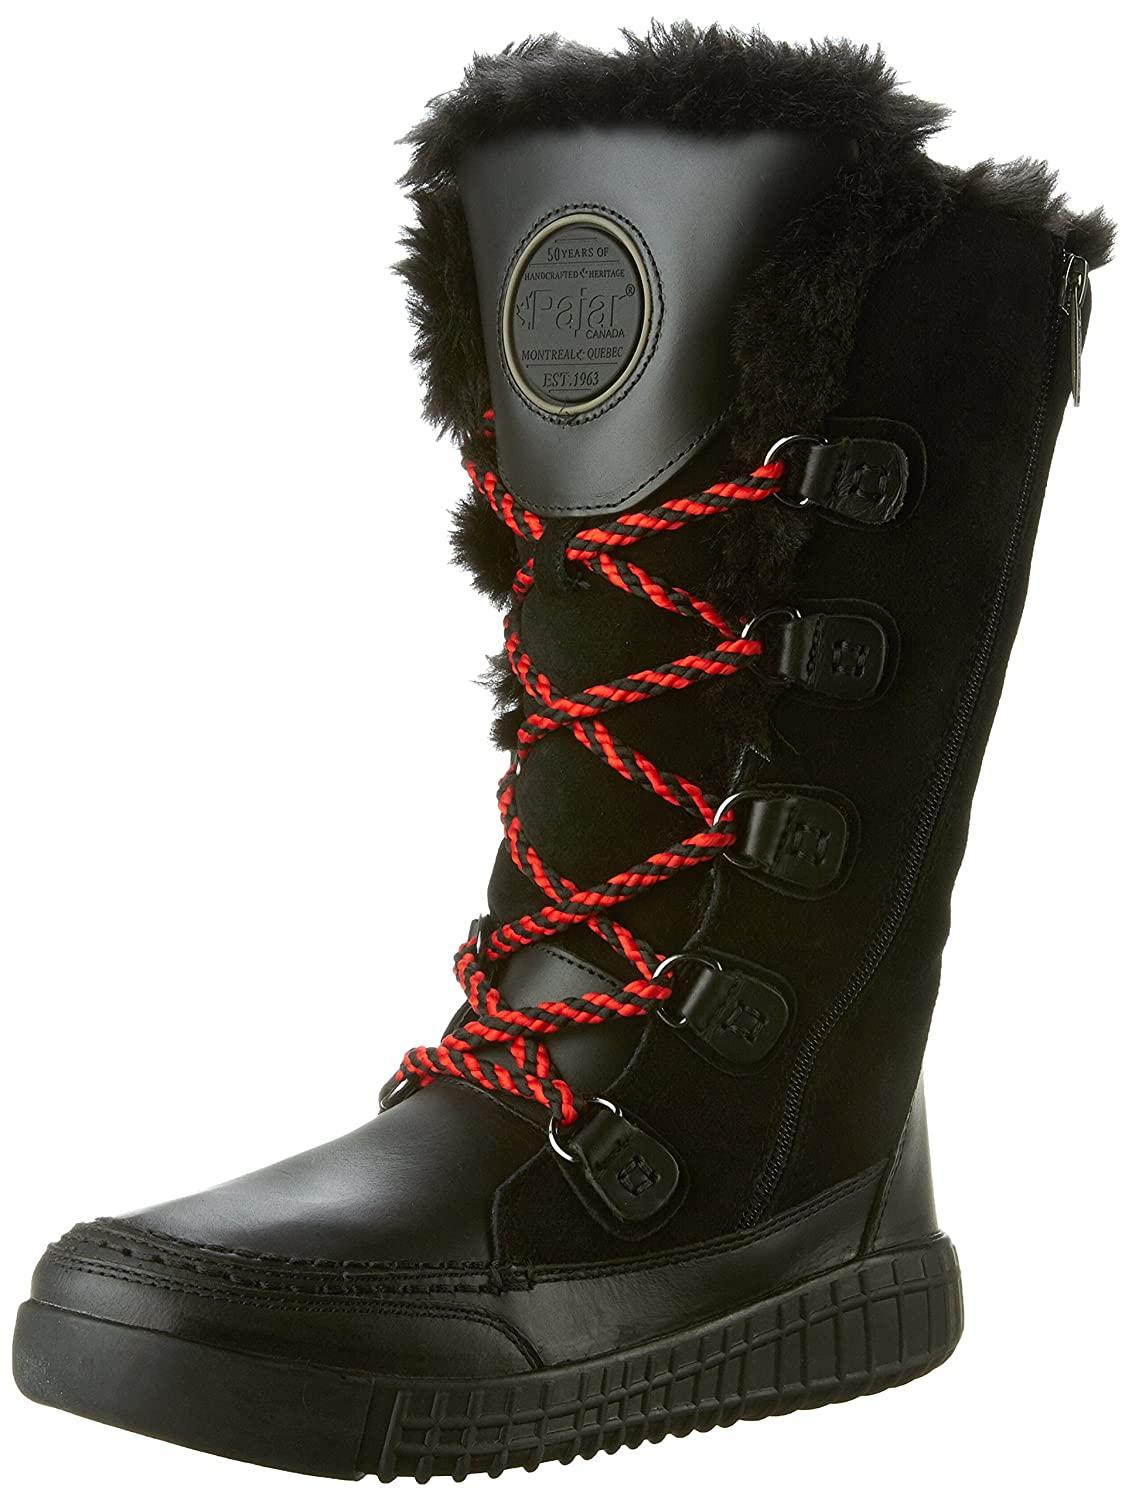 Pajar Women's Paityn Snow Boot B01B65O6PC 37 EU/6-6.5 M US|Black/Black